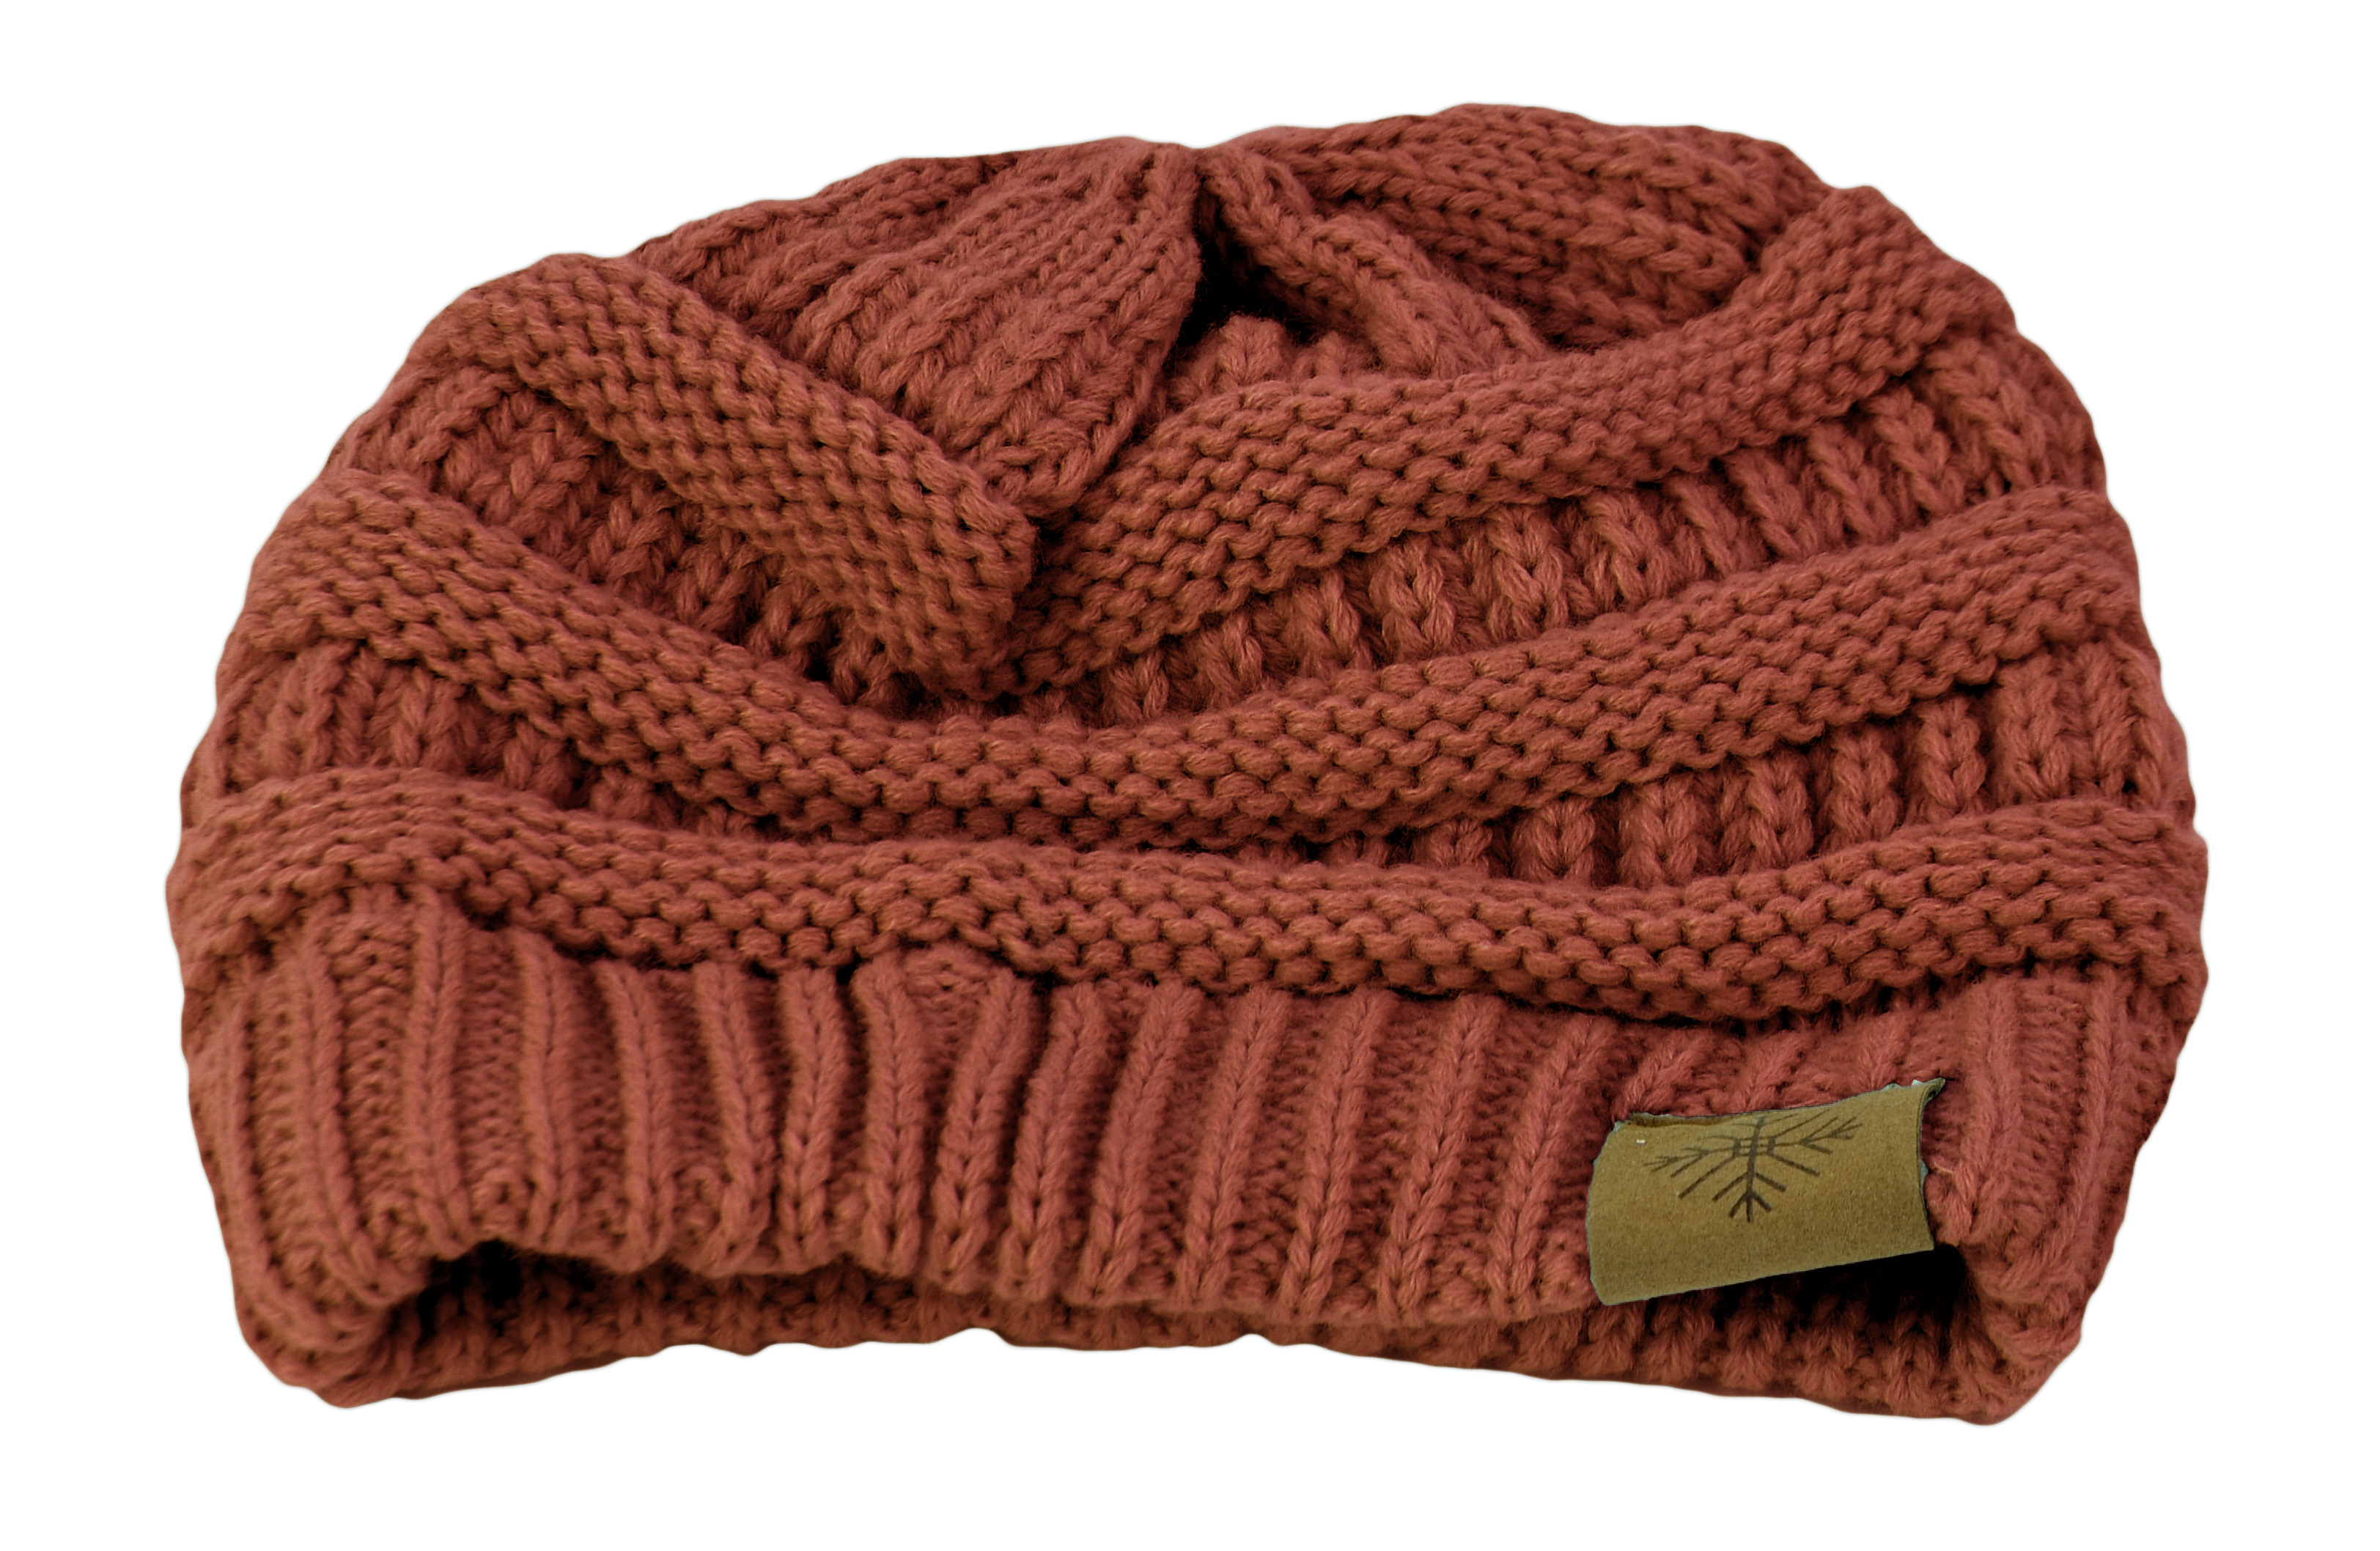 Belle Donne - Women's Winter Fleece Lined Cable Knitted Pom Pom Beanie Hat - Rust